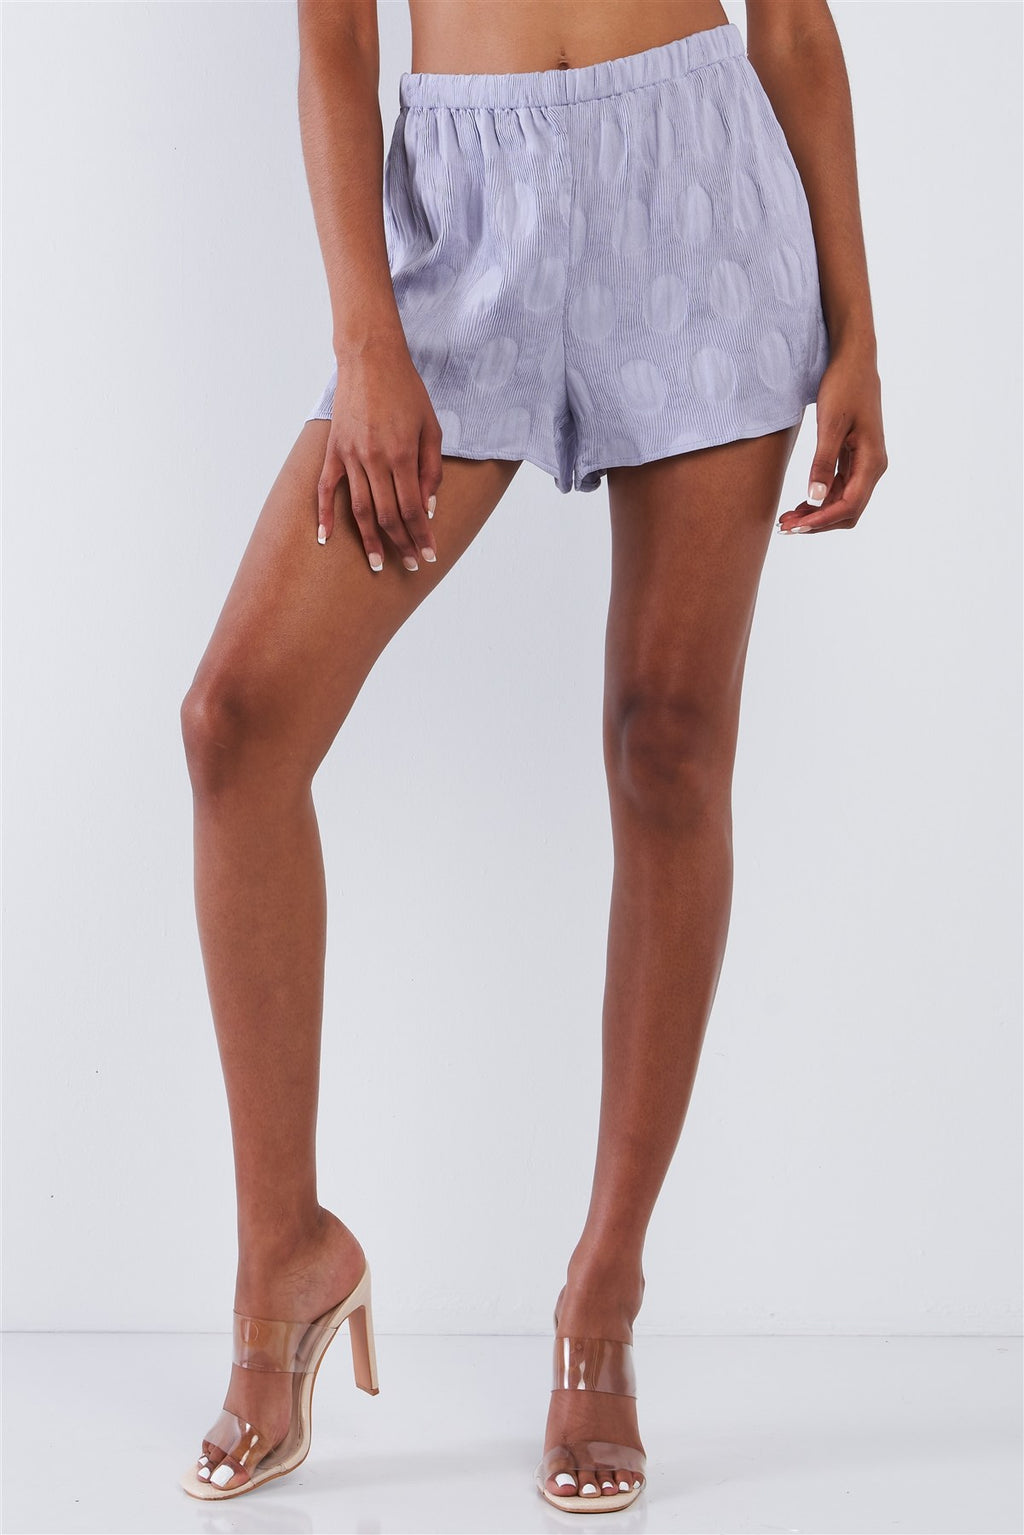 Lavender Circle Print Fine Accordion Pleaded Relaxed Fit Shorts - De Bawa Inc.